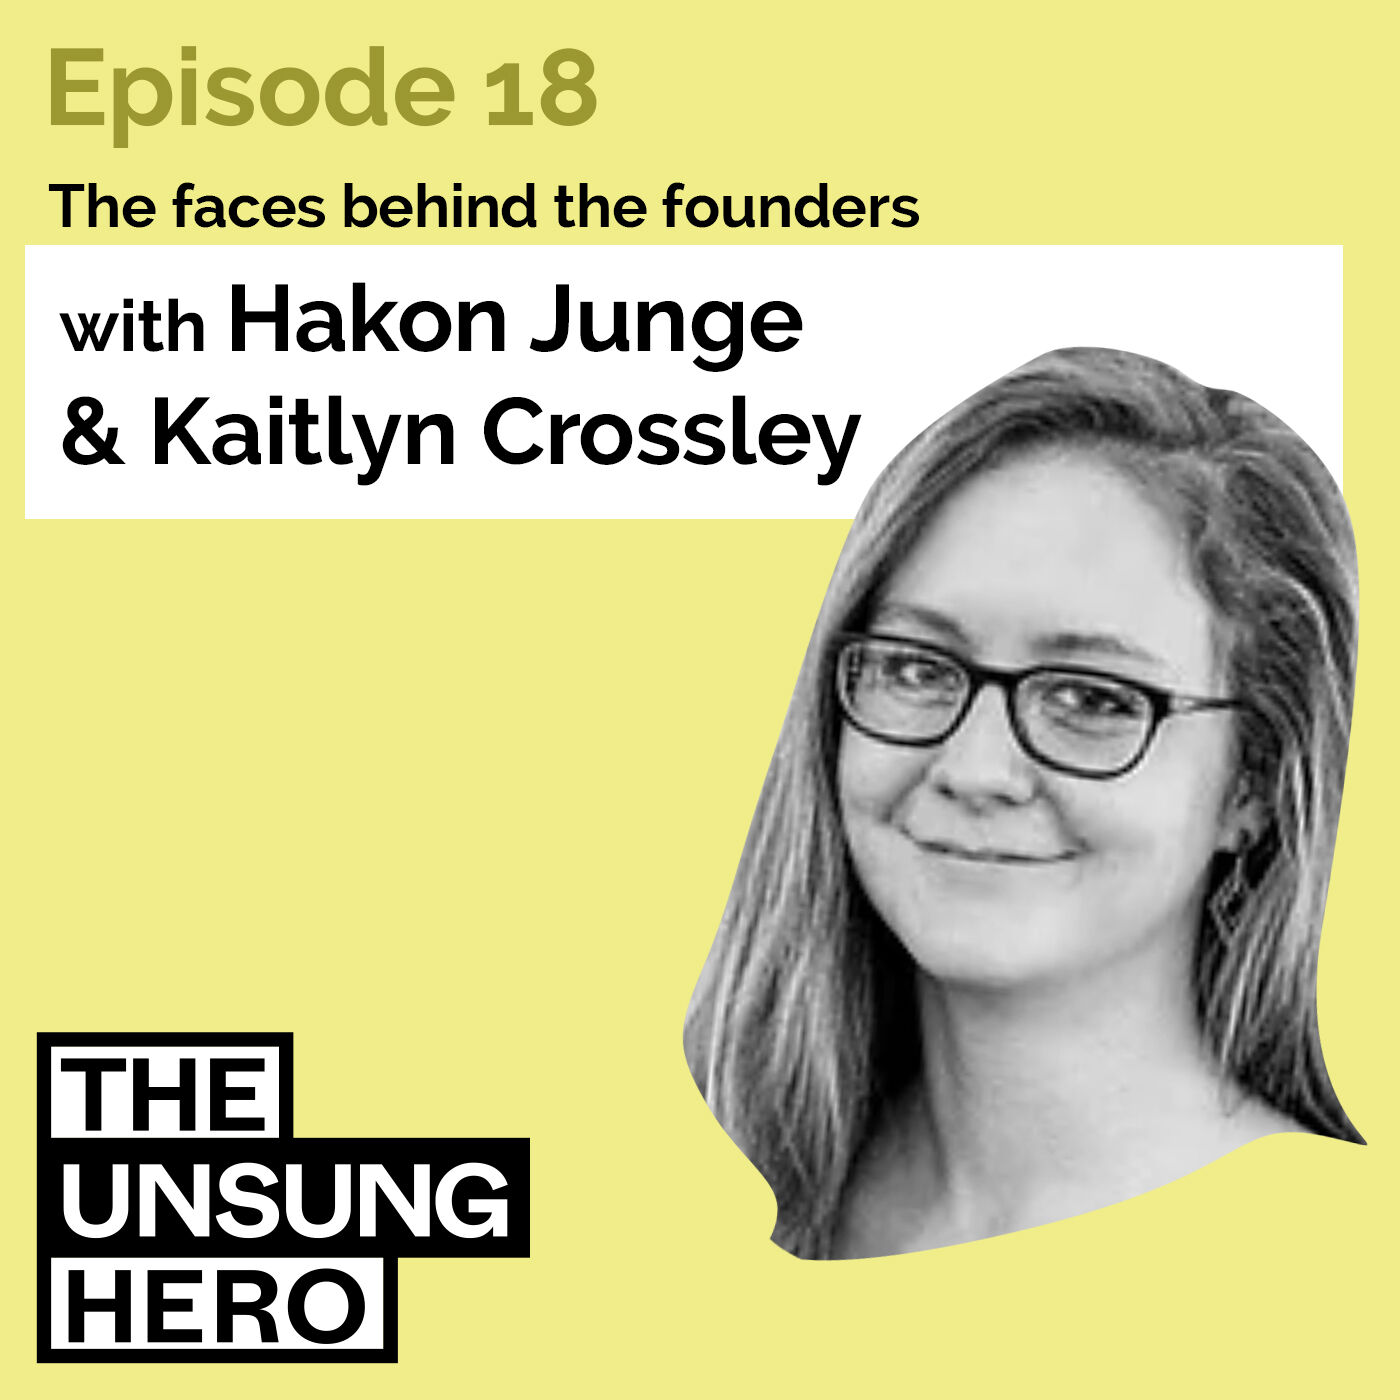 """Episode 18: """"How To Establish Healthy Boundaries As An Early Employee"""" with Kaitlyn Crossley (Previously with Monolith AI)"""